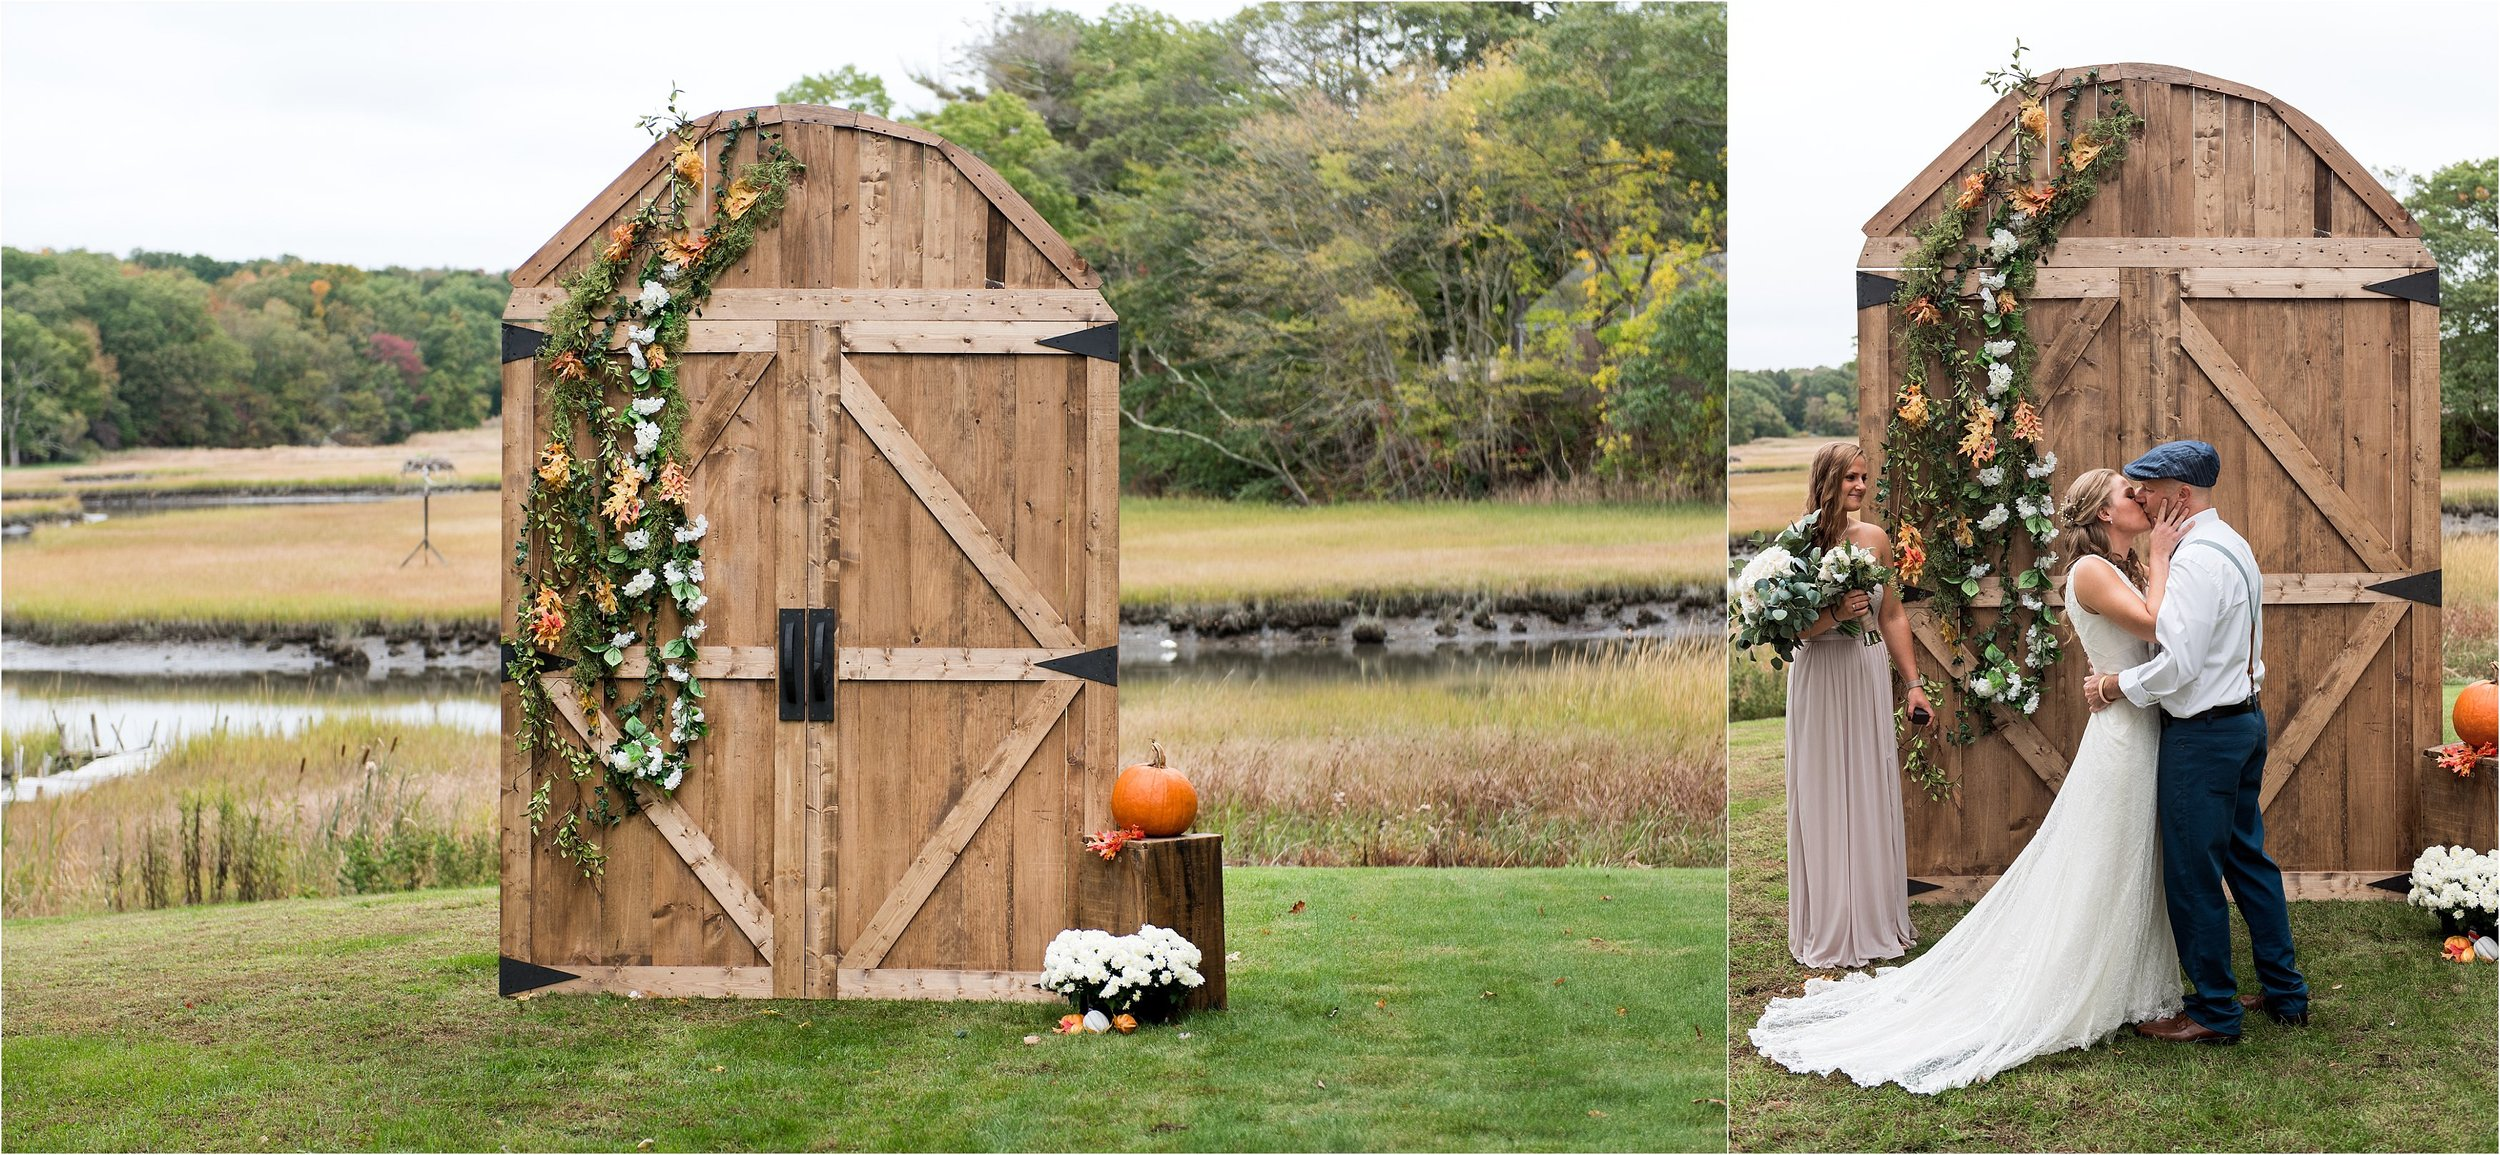 refurbished wood altar rustic wedding decor DIY